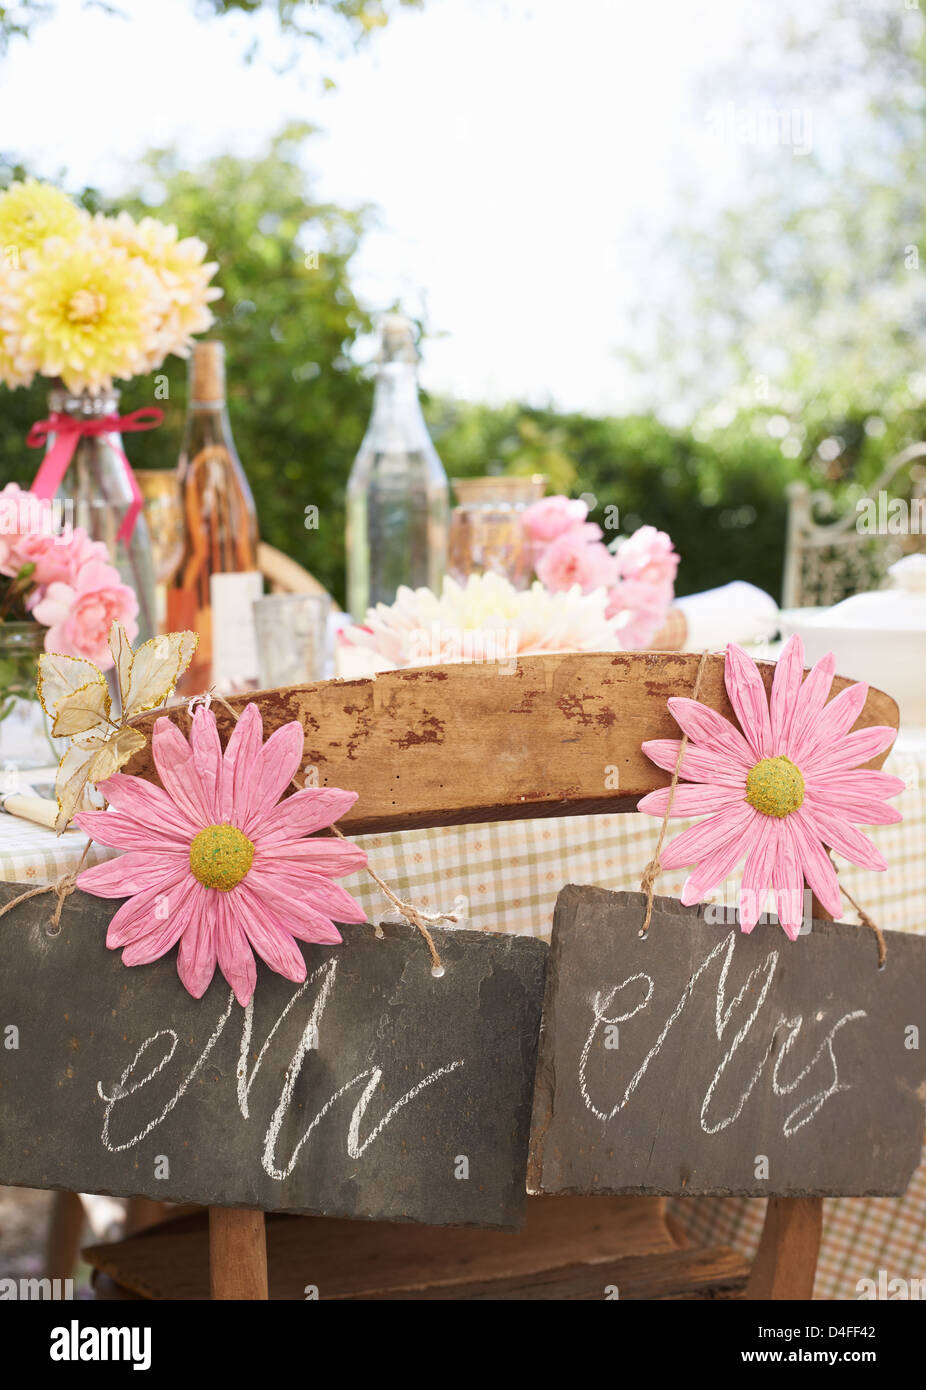 Table set for wedding reception outdoors - Stock Image